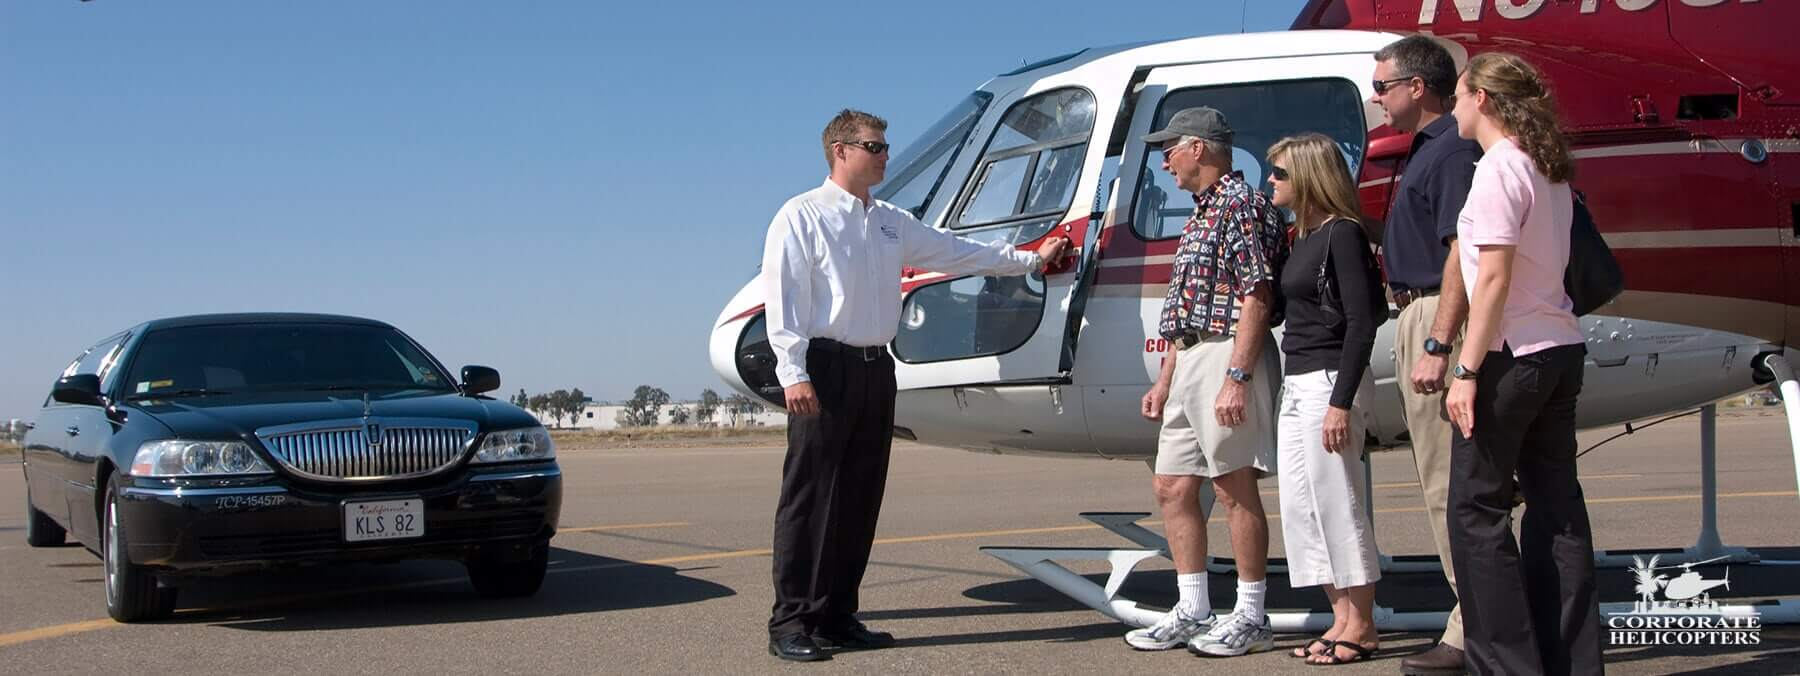 Helicopter charters in San Diego